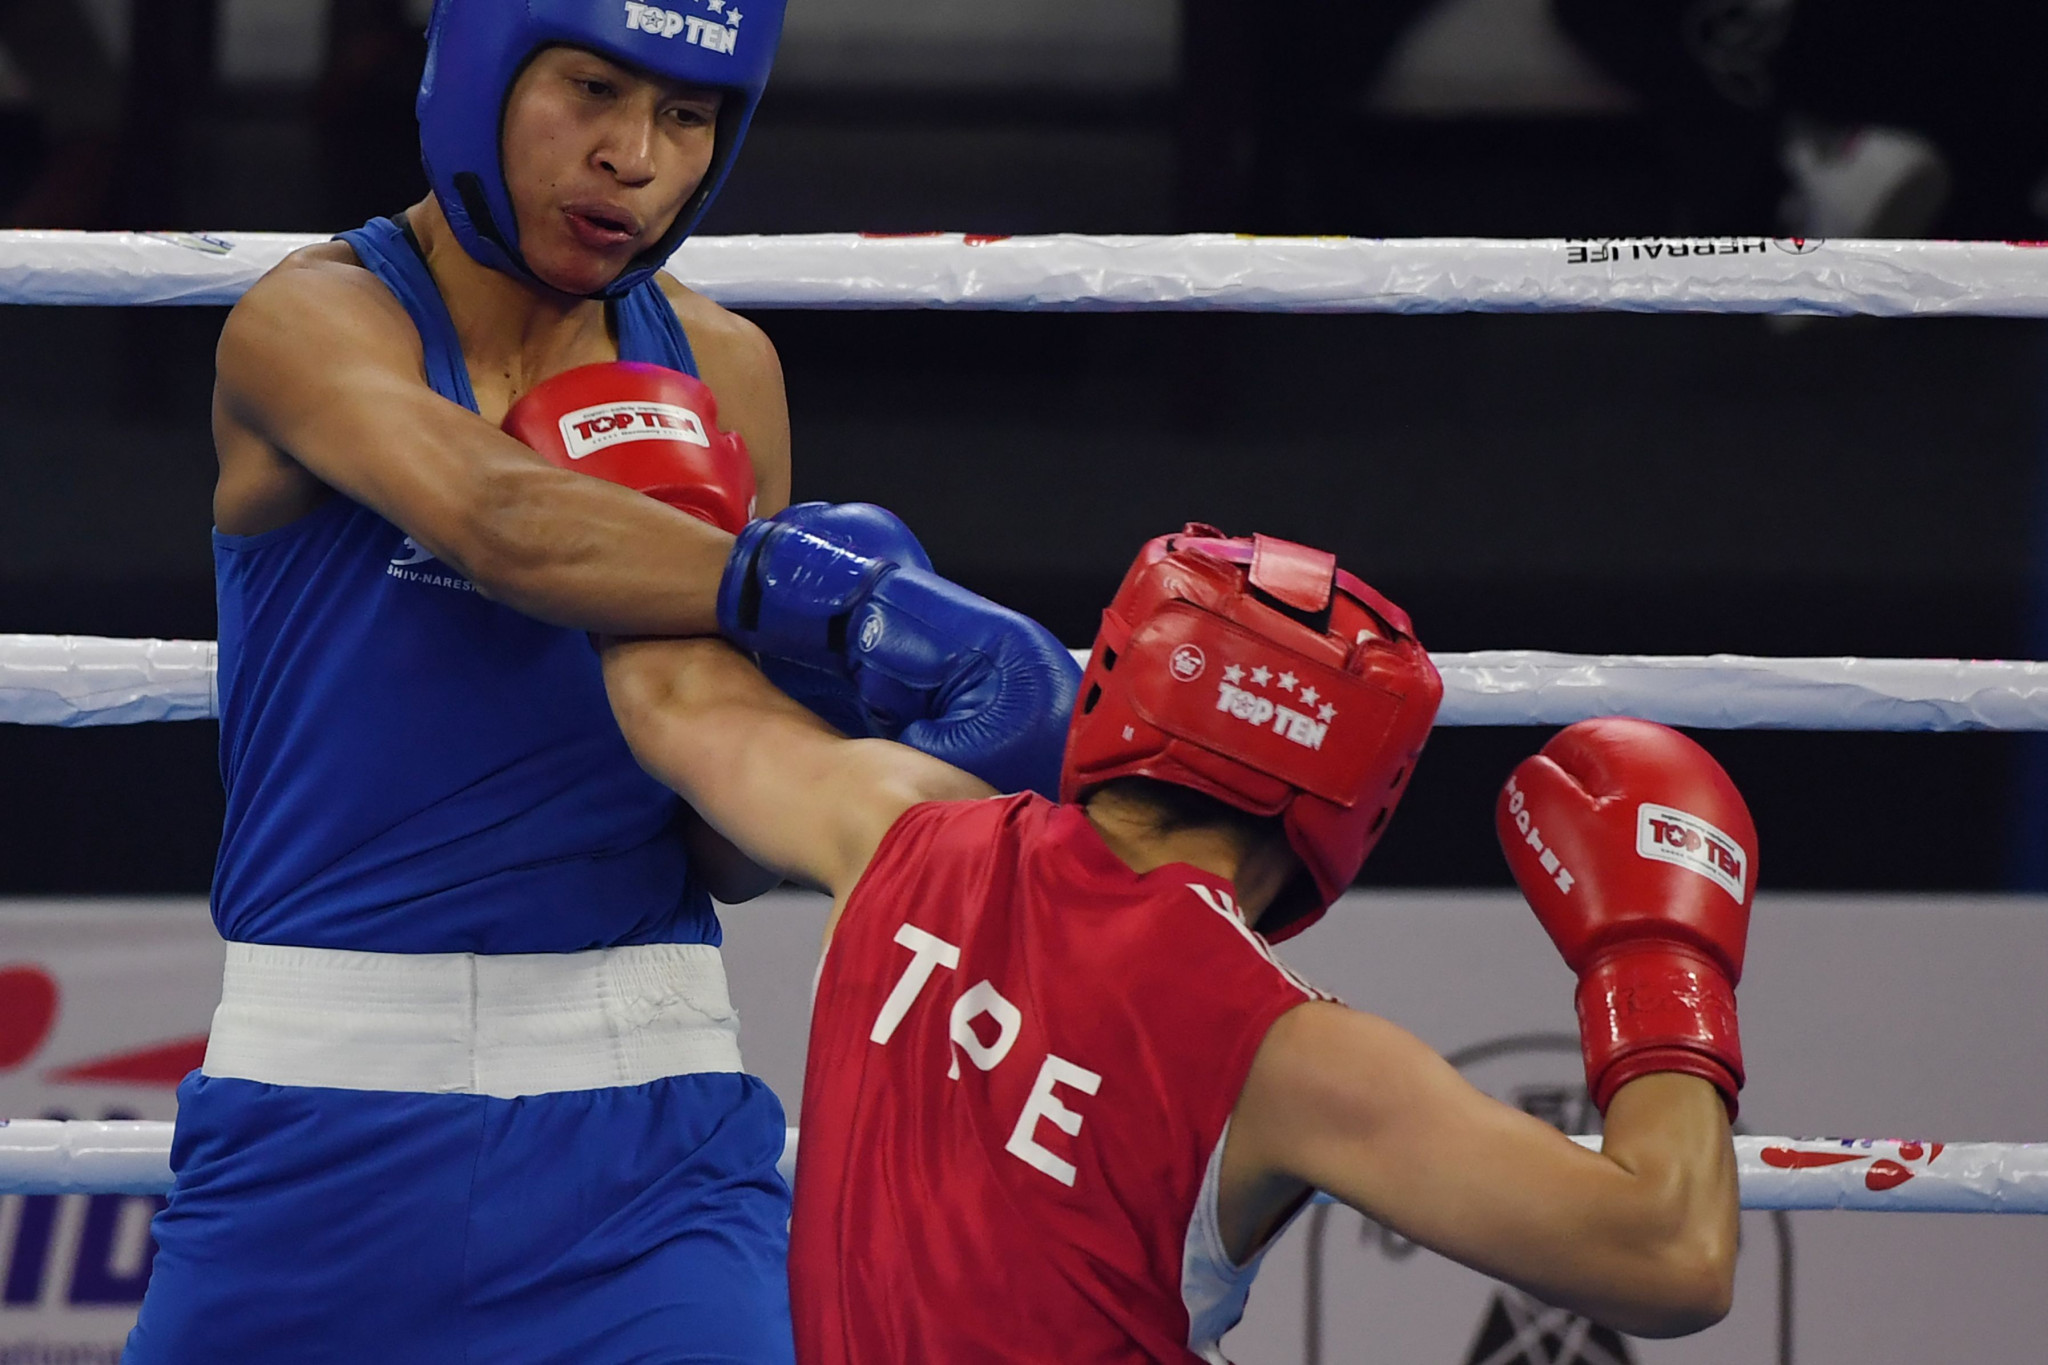 Indian trio secure Tokyo 2020 berths at Asia-Oceania Olympic boxing qualifier